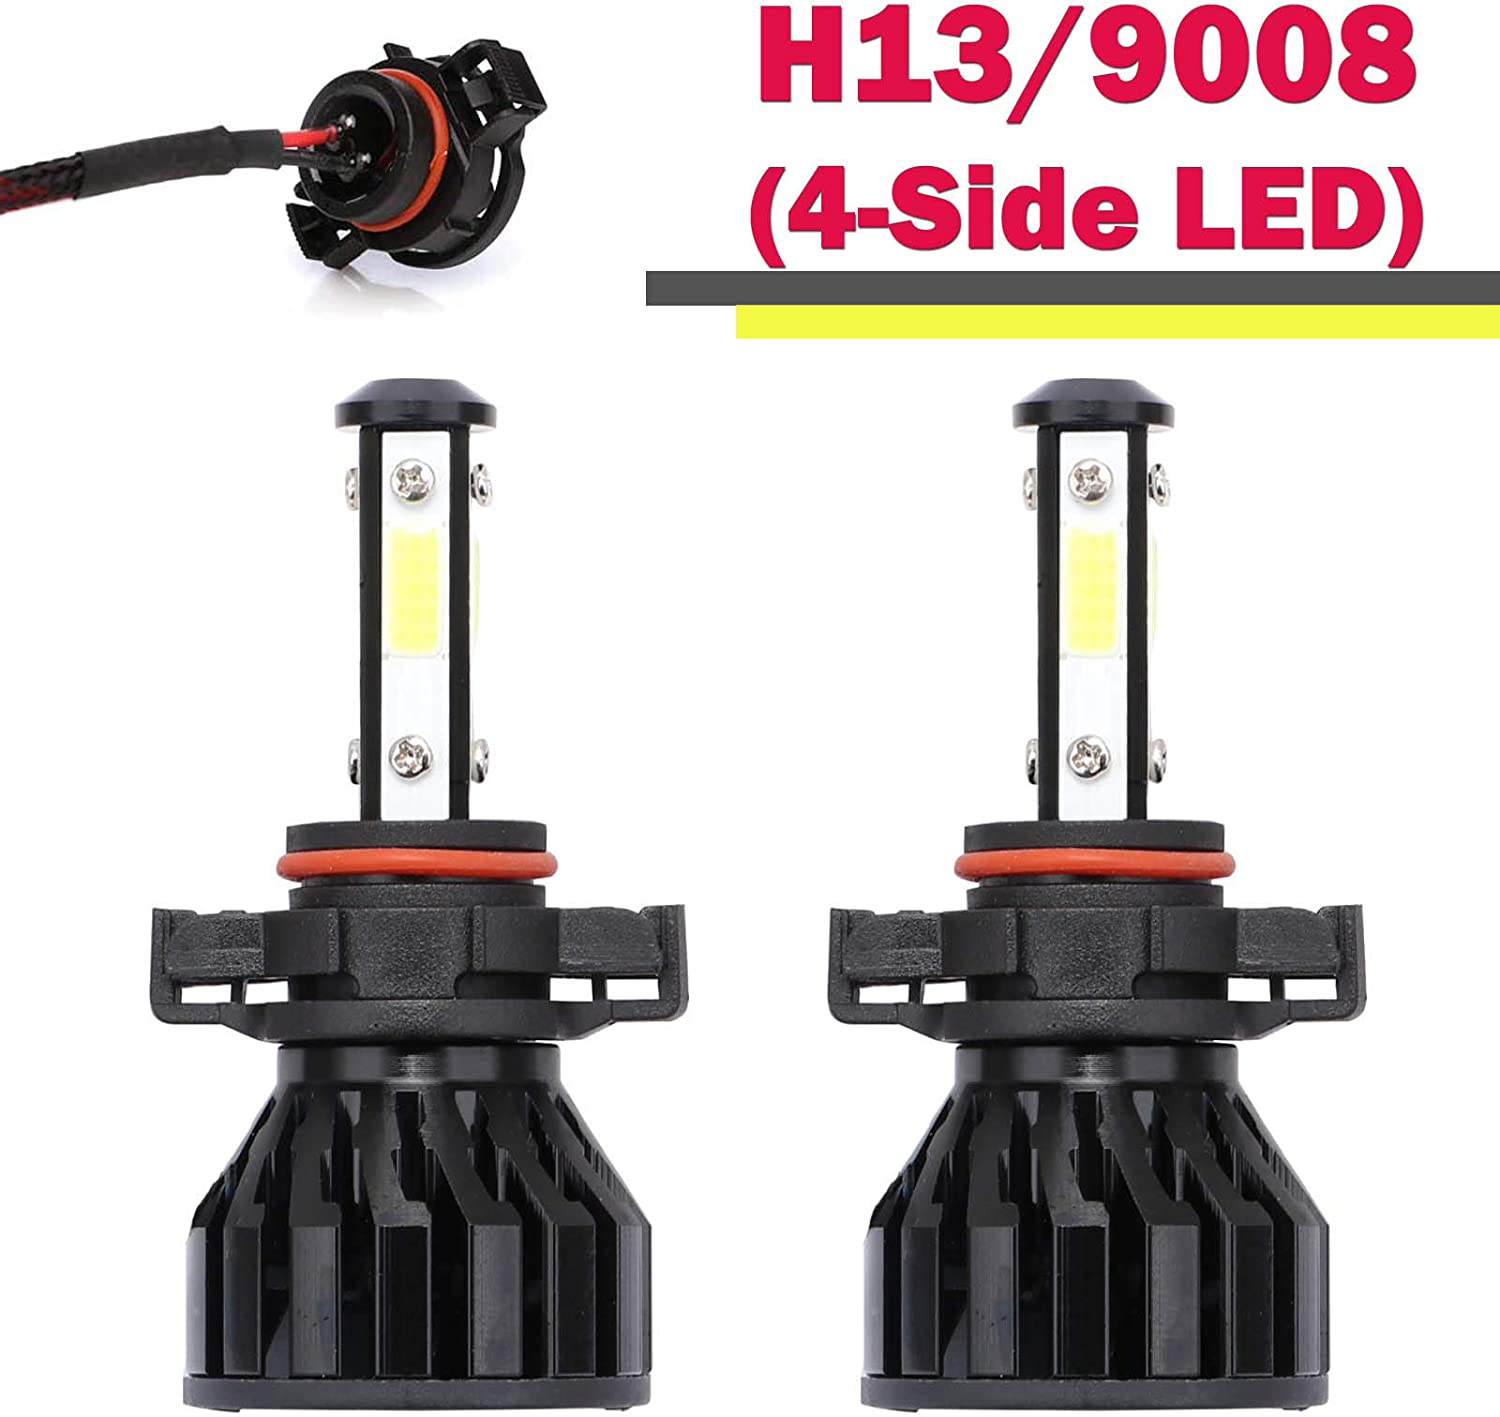 H4 LED Headlight Bulbs 4-Side Chips Hi//Low Conversion Kit 6000K Cool White 360 Degree Adjustable Beam 12000LM Super Bright 5yr Warranty